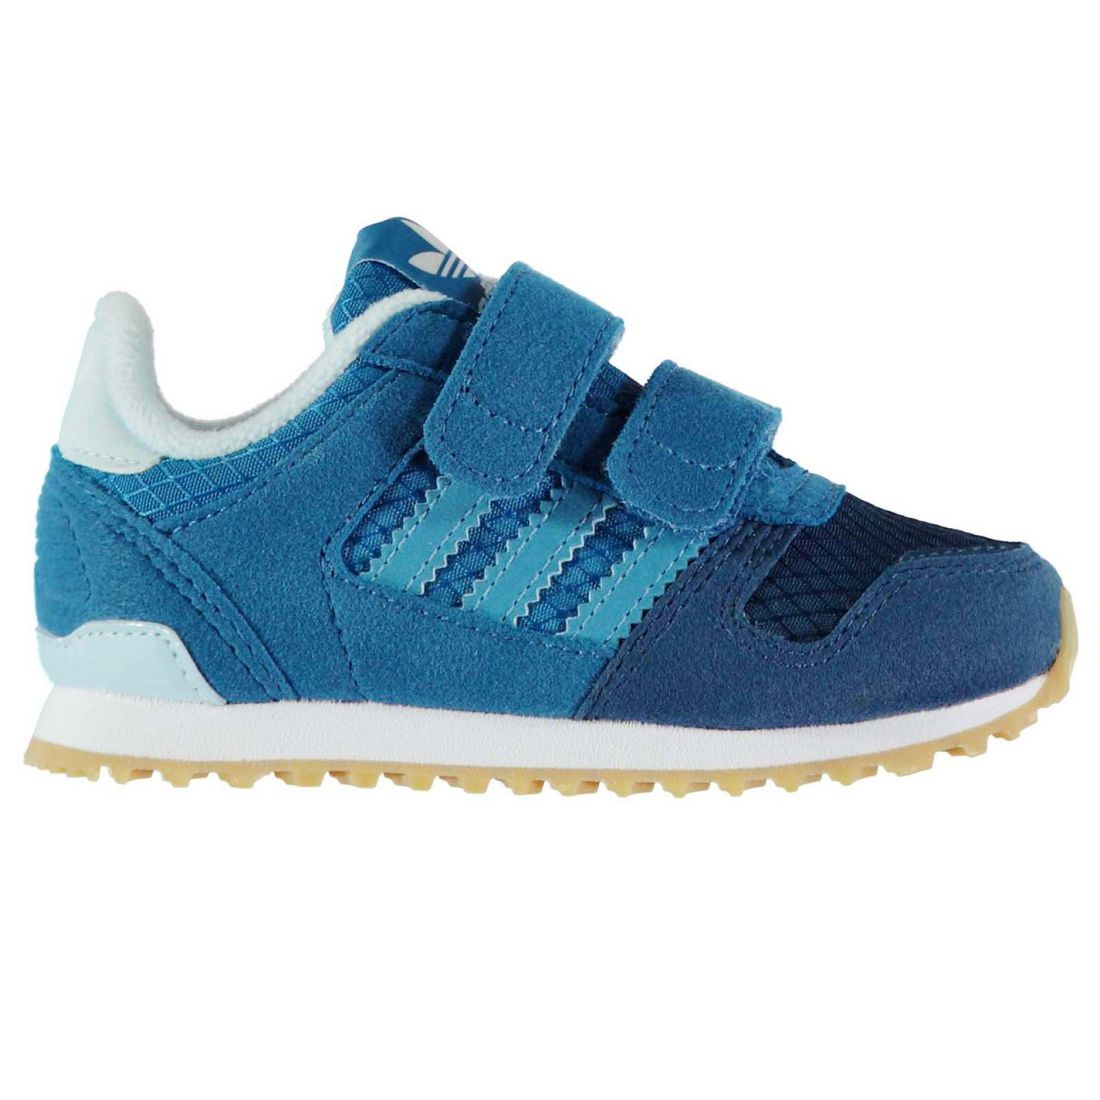 b2533ee008e94 adidas Boys ZX 700 CF Trainers Shoes Baby Ortholite Mesh Breathable Stripe